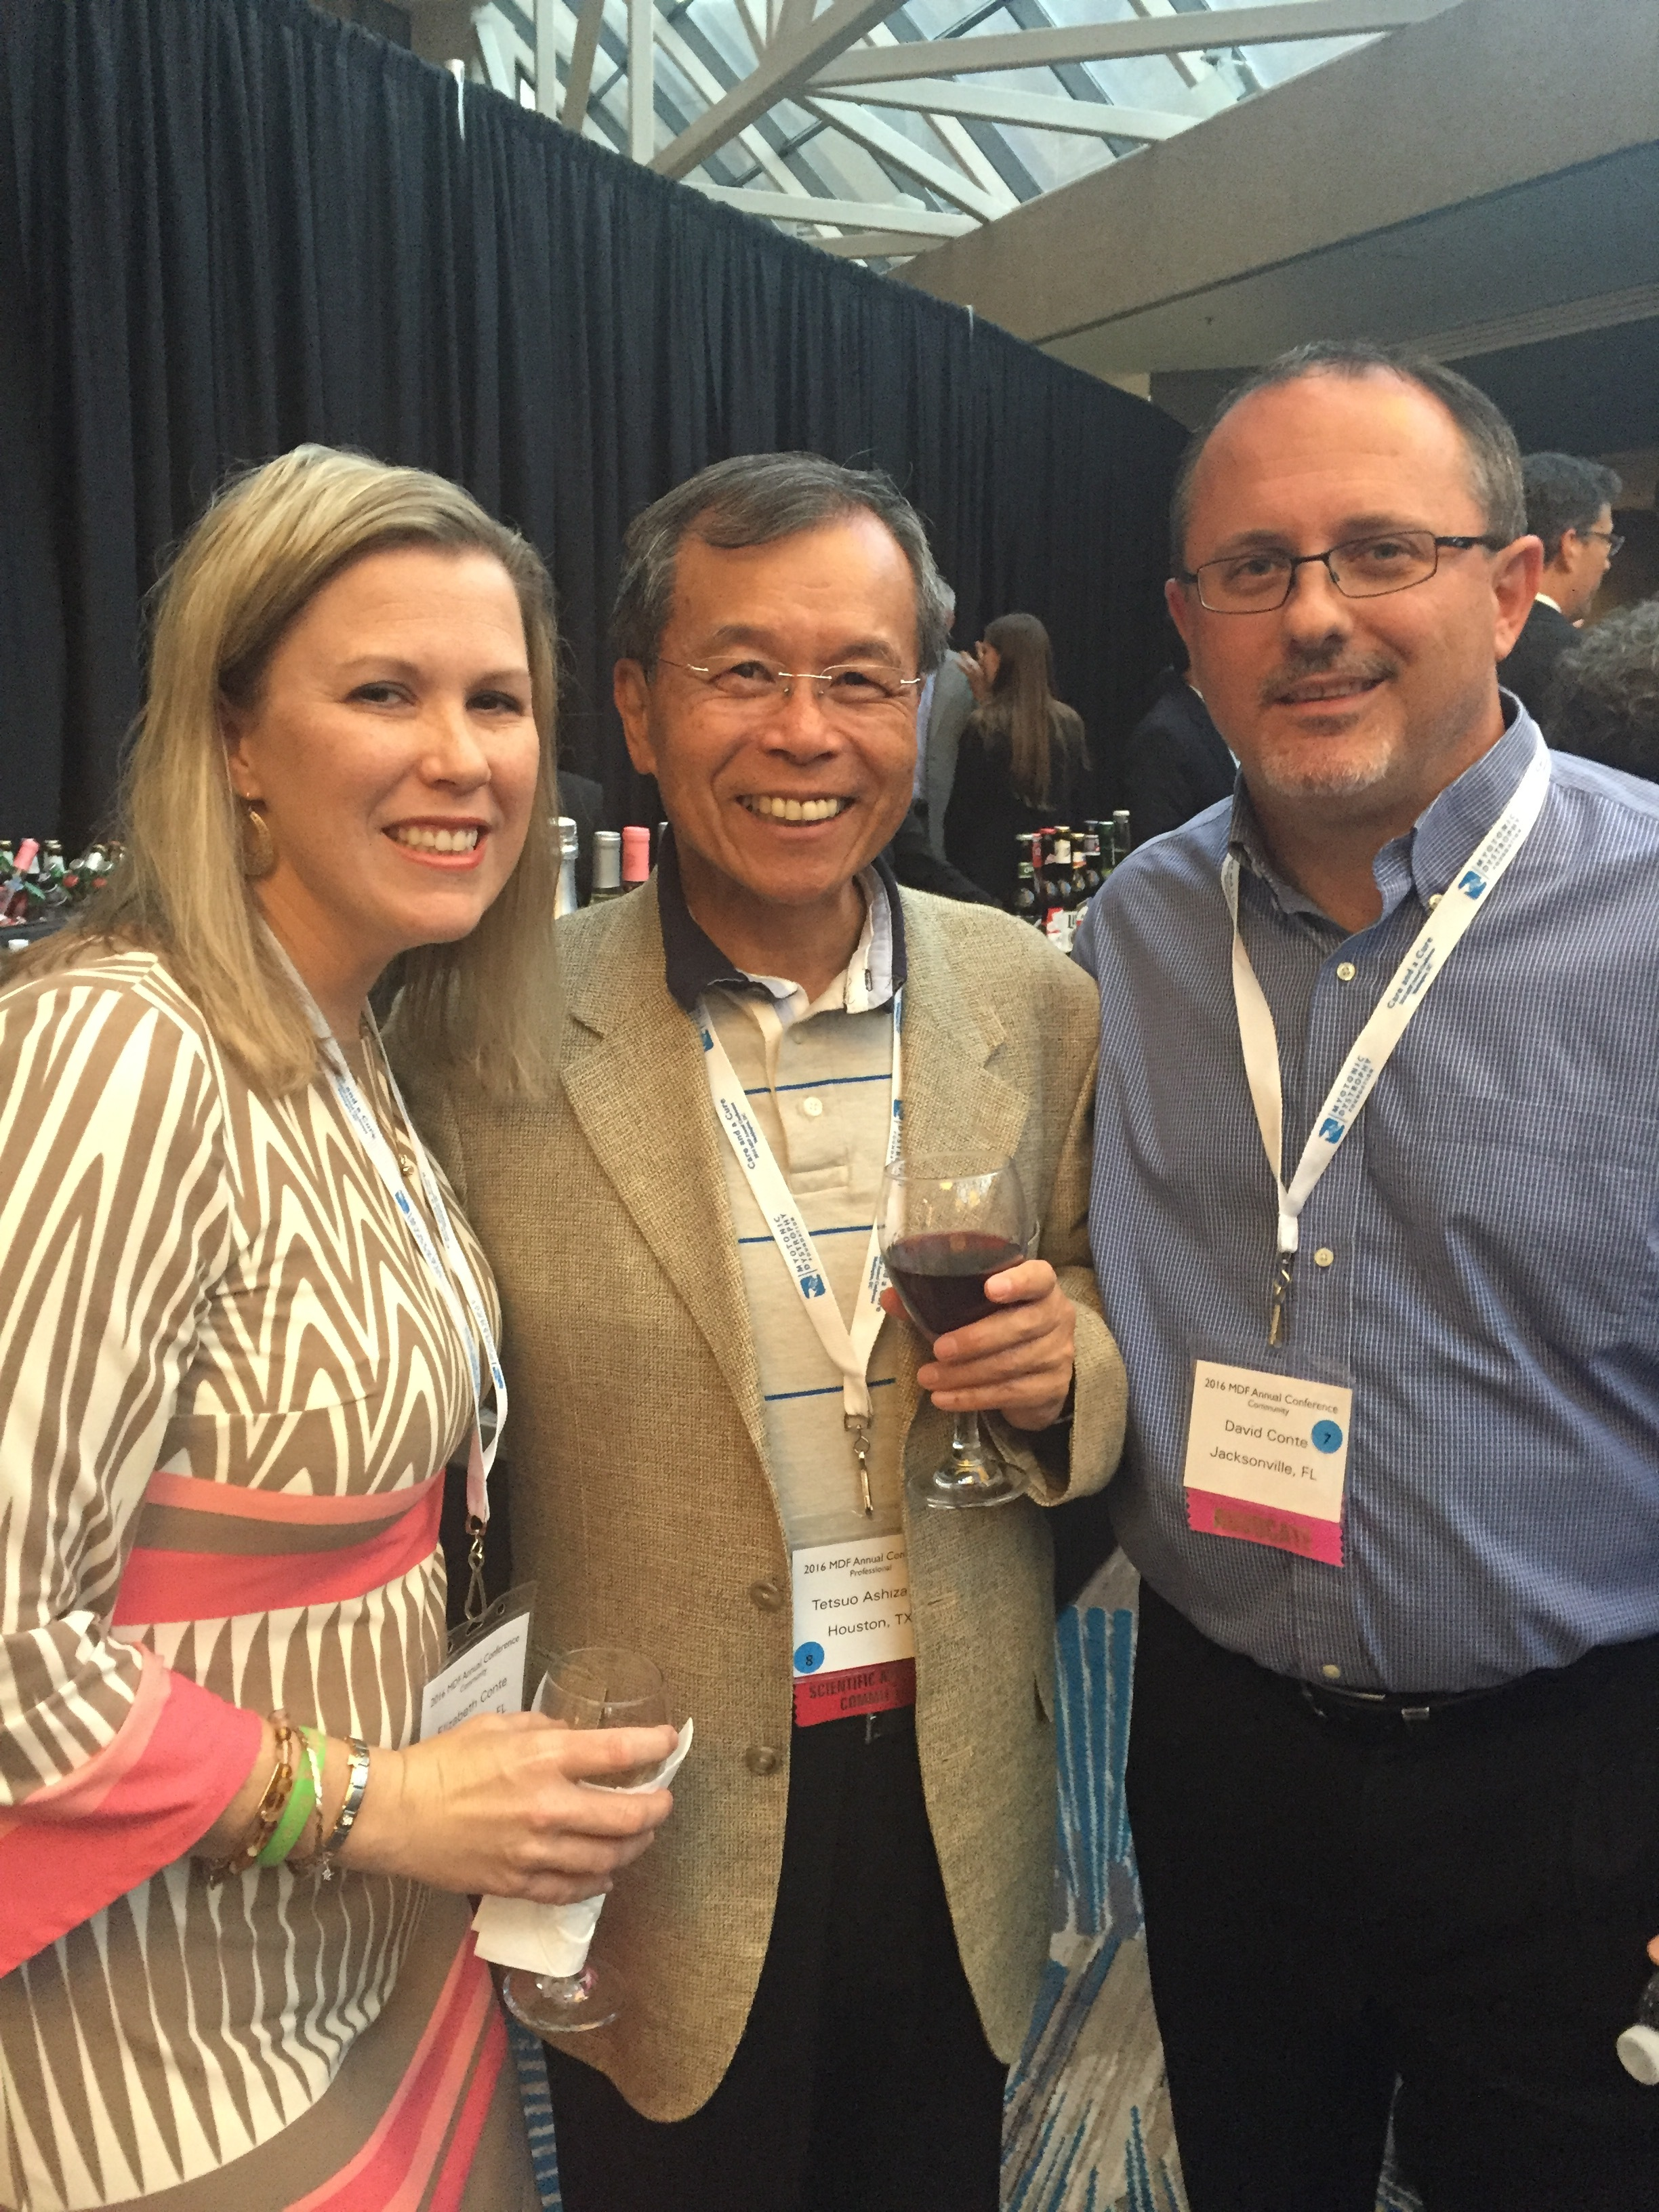 David and Elizabeth with Dr. Tetsuo Ashizawa at the Annual MDF Conference.